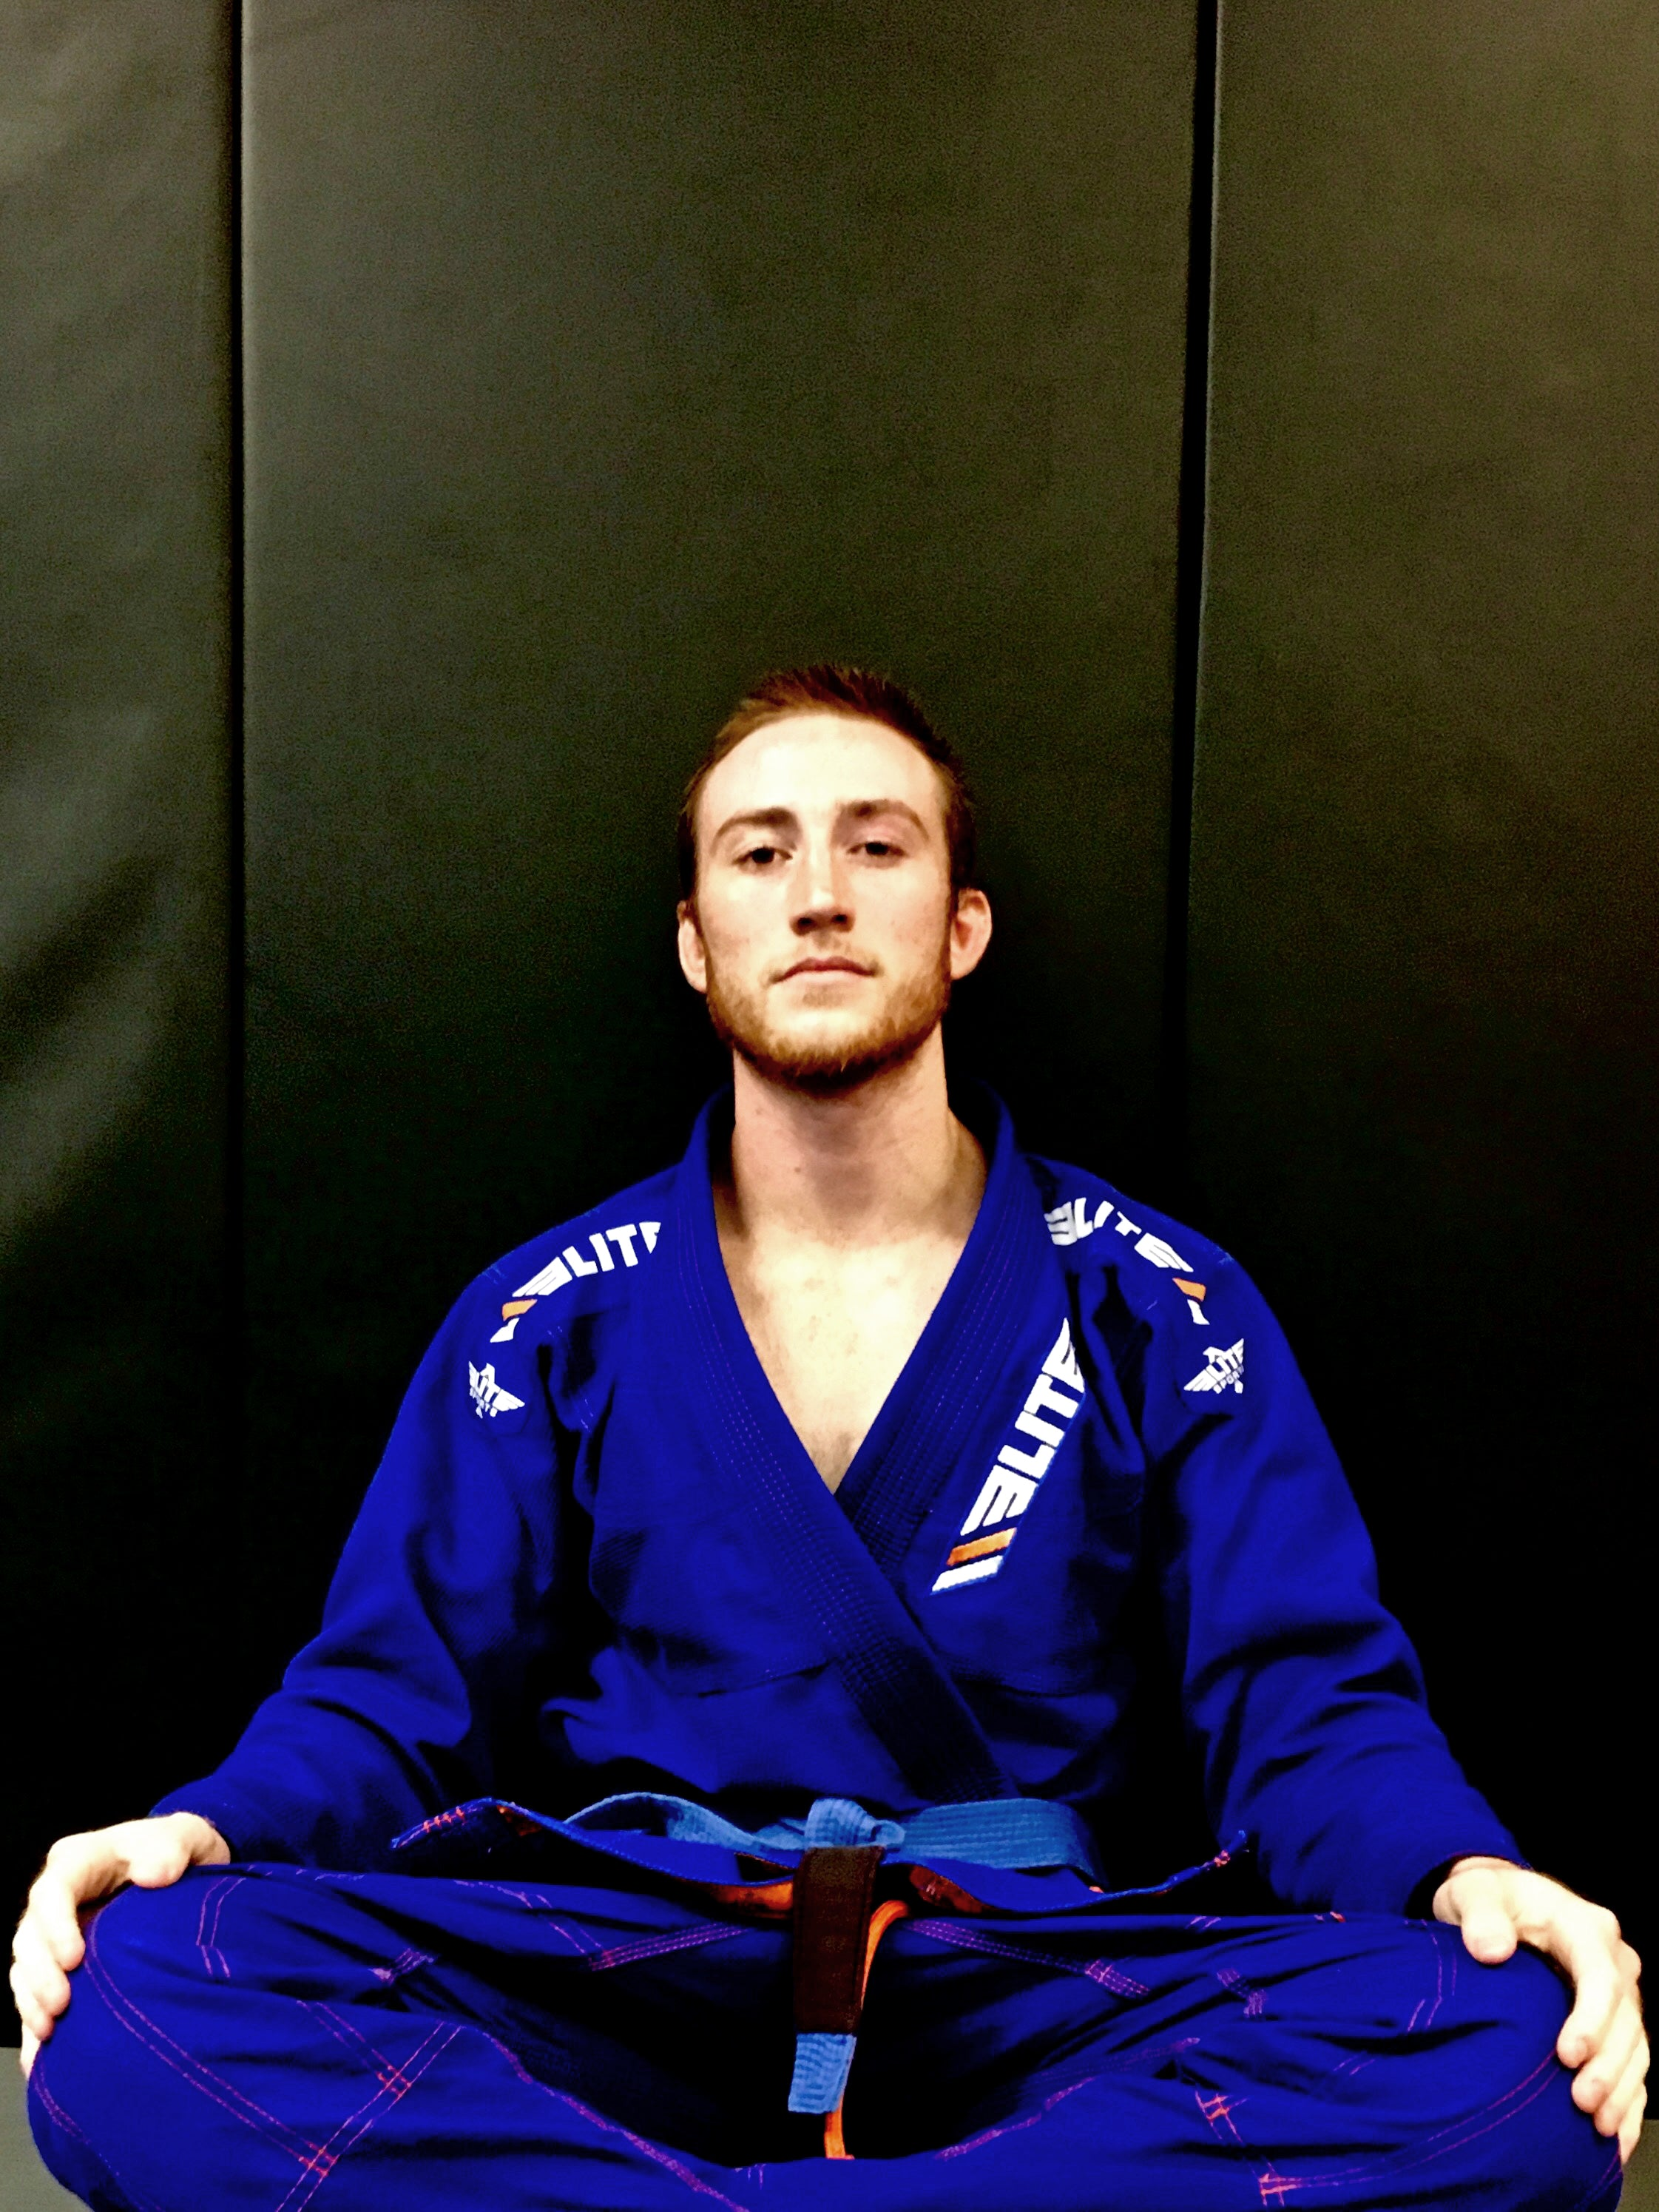 Elite Sports Team Elite Bjj Fighter Ashton Riddle-Johnston  Image10